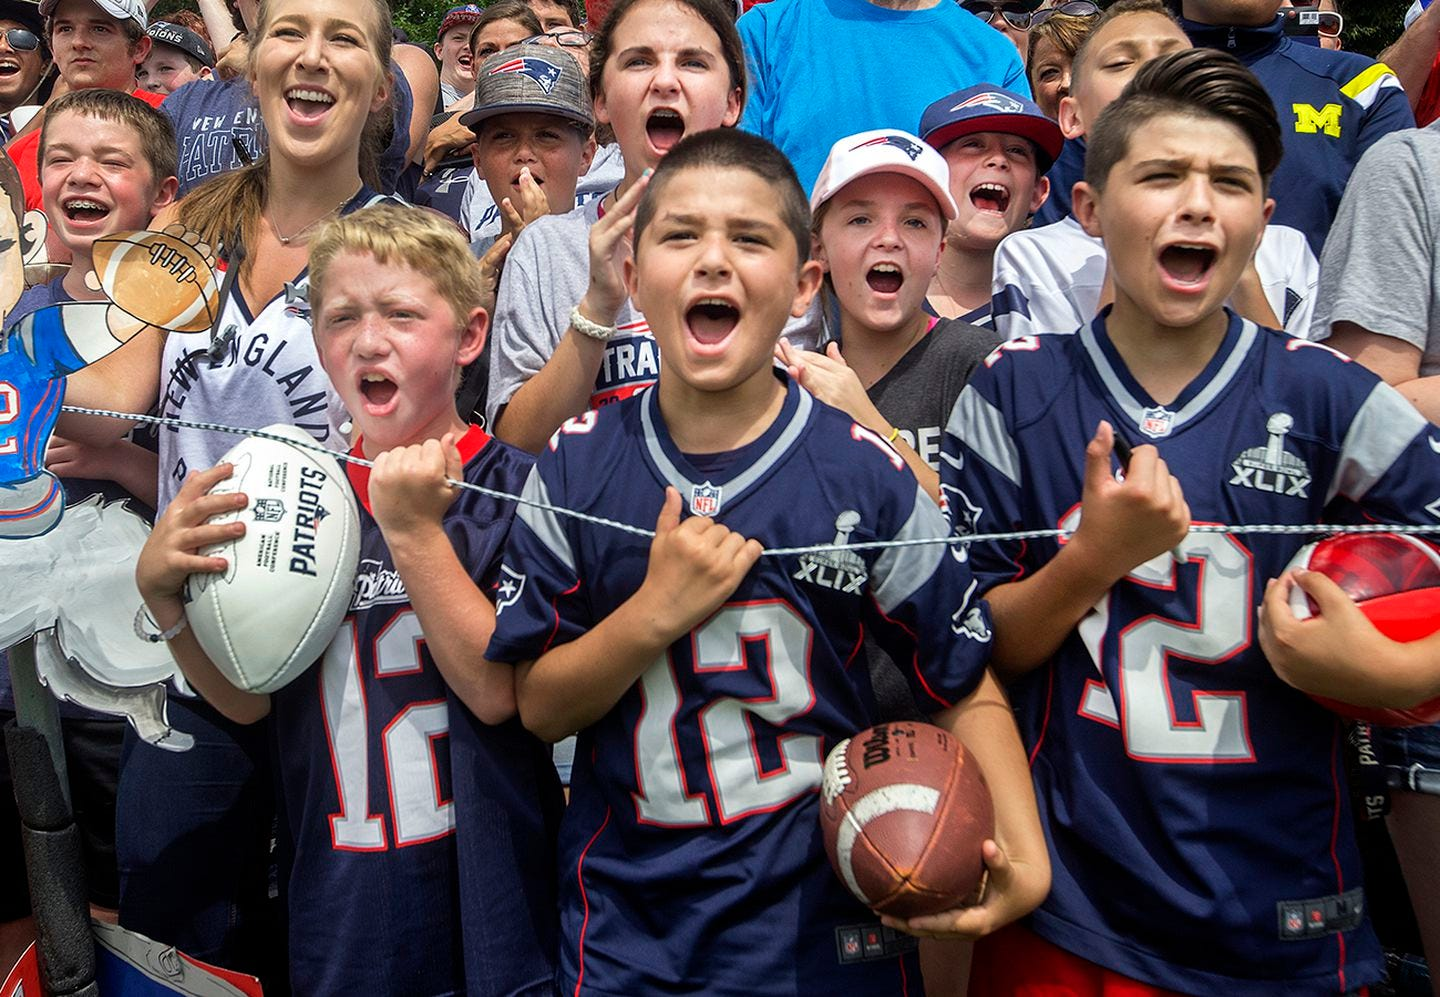 There's no doubt who the fan favorite is at Patriots practice.